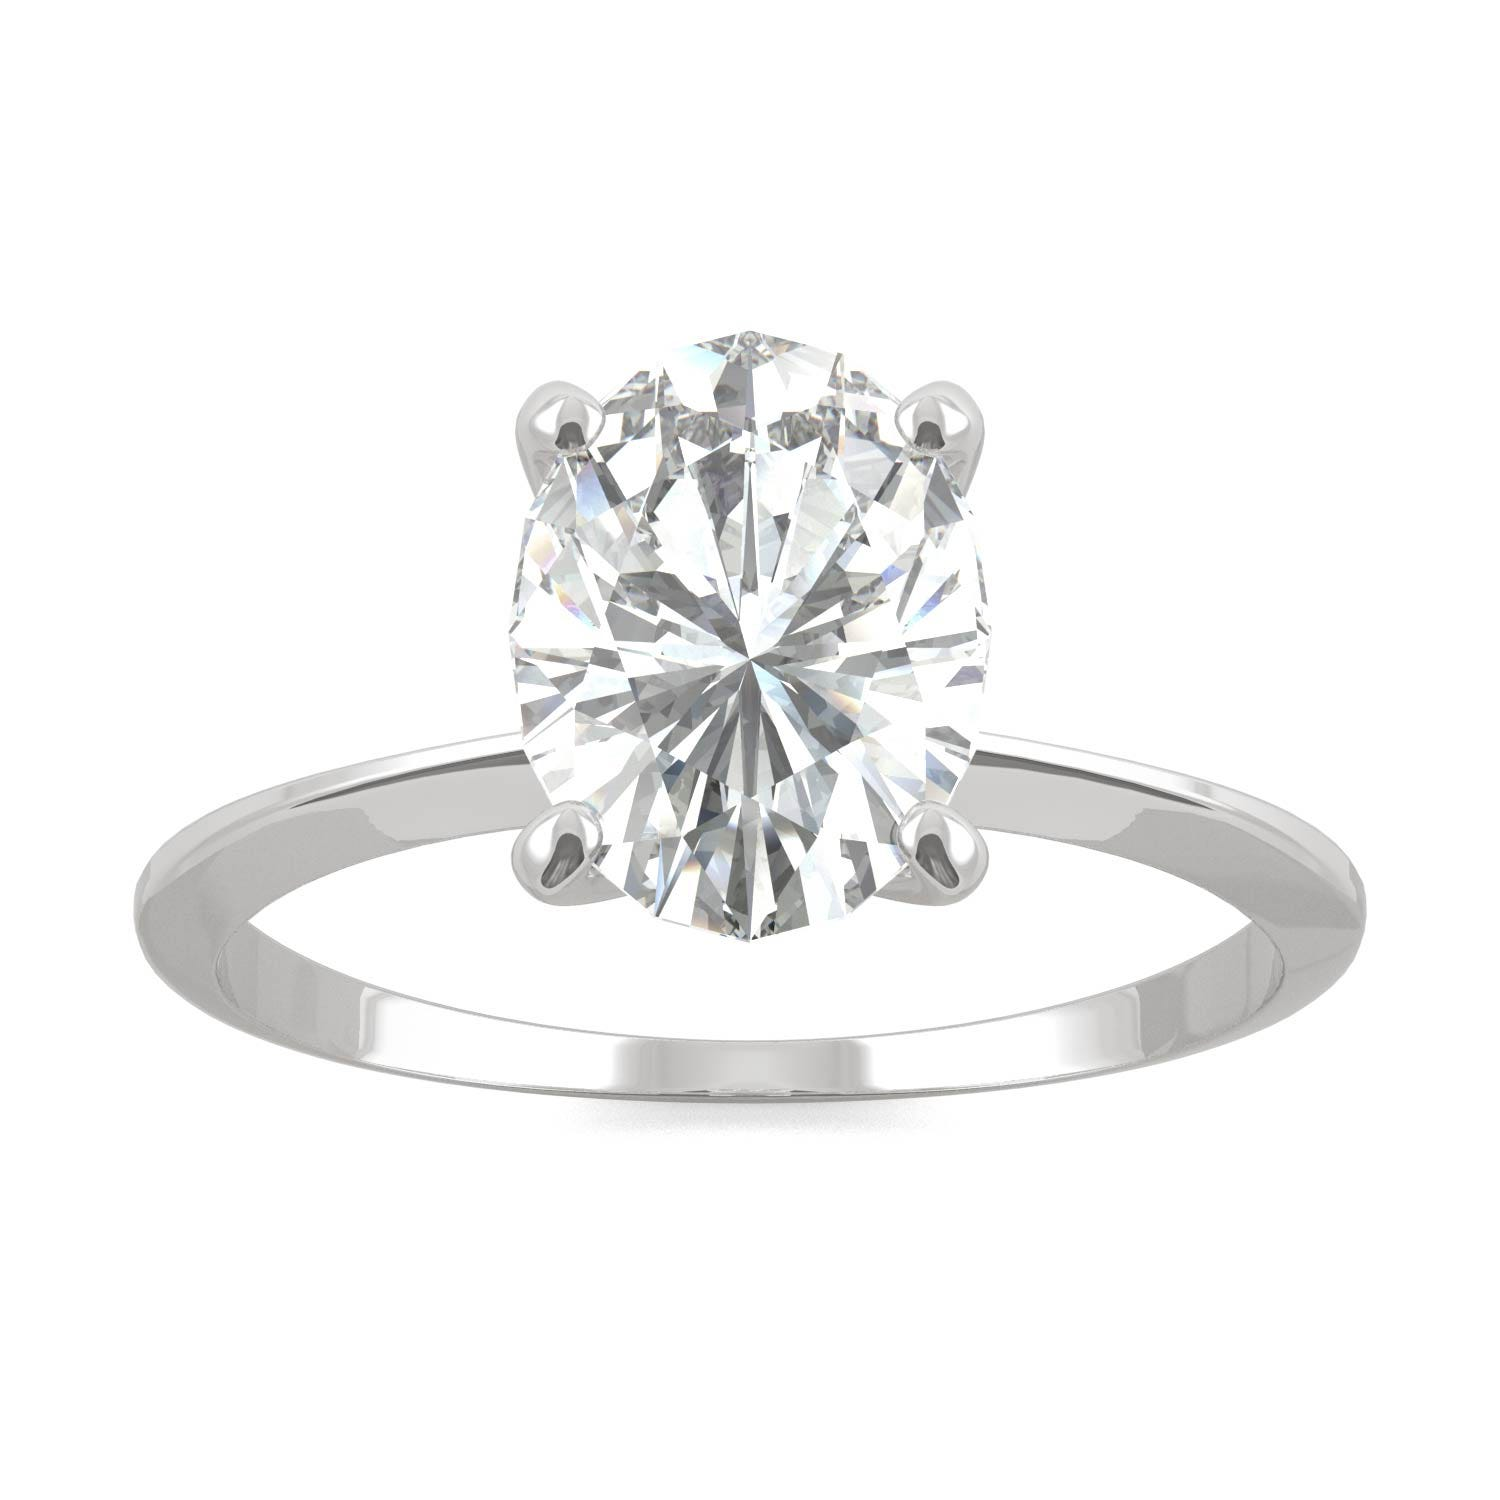 Classic Solitaire Engagement Ring in 14K White Gold, Size: 6, 2.10CTW Oval Forever One - Near-Colorless Moissanite Charles & Colvard